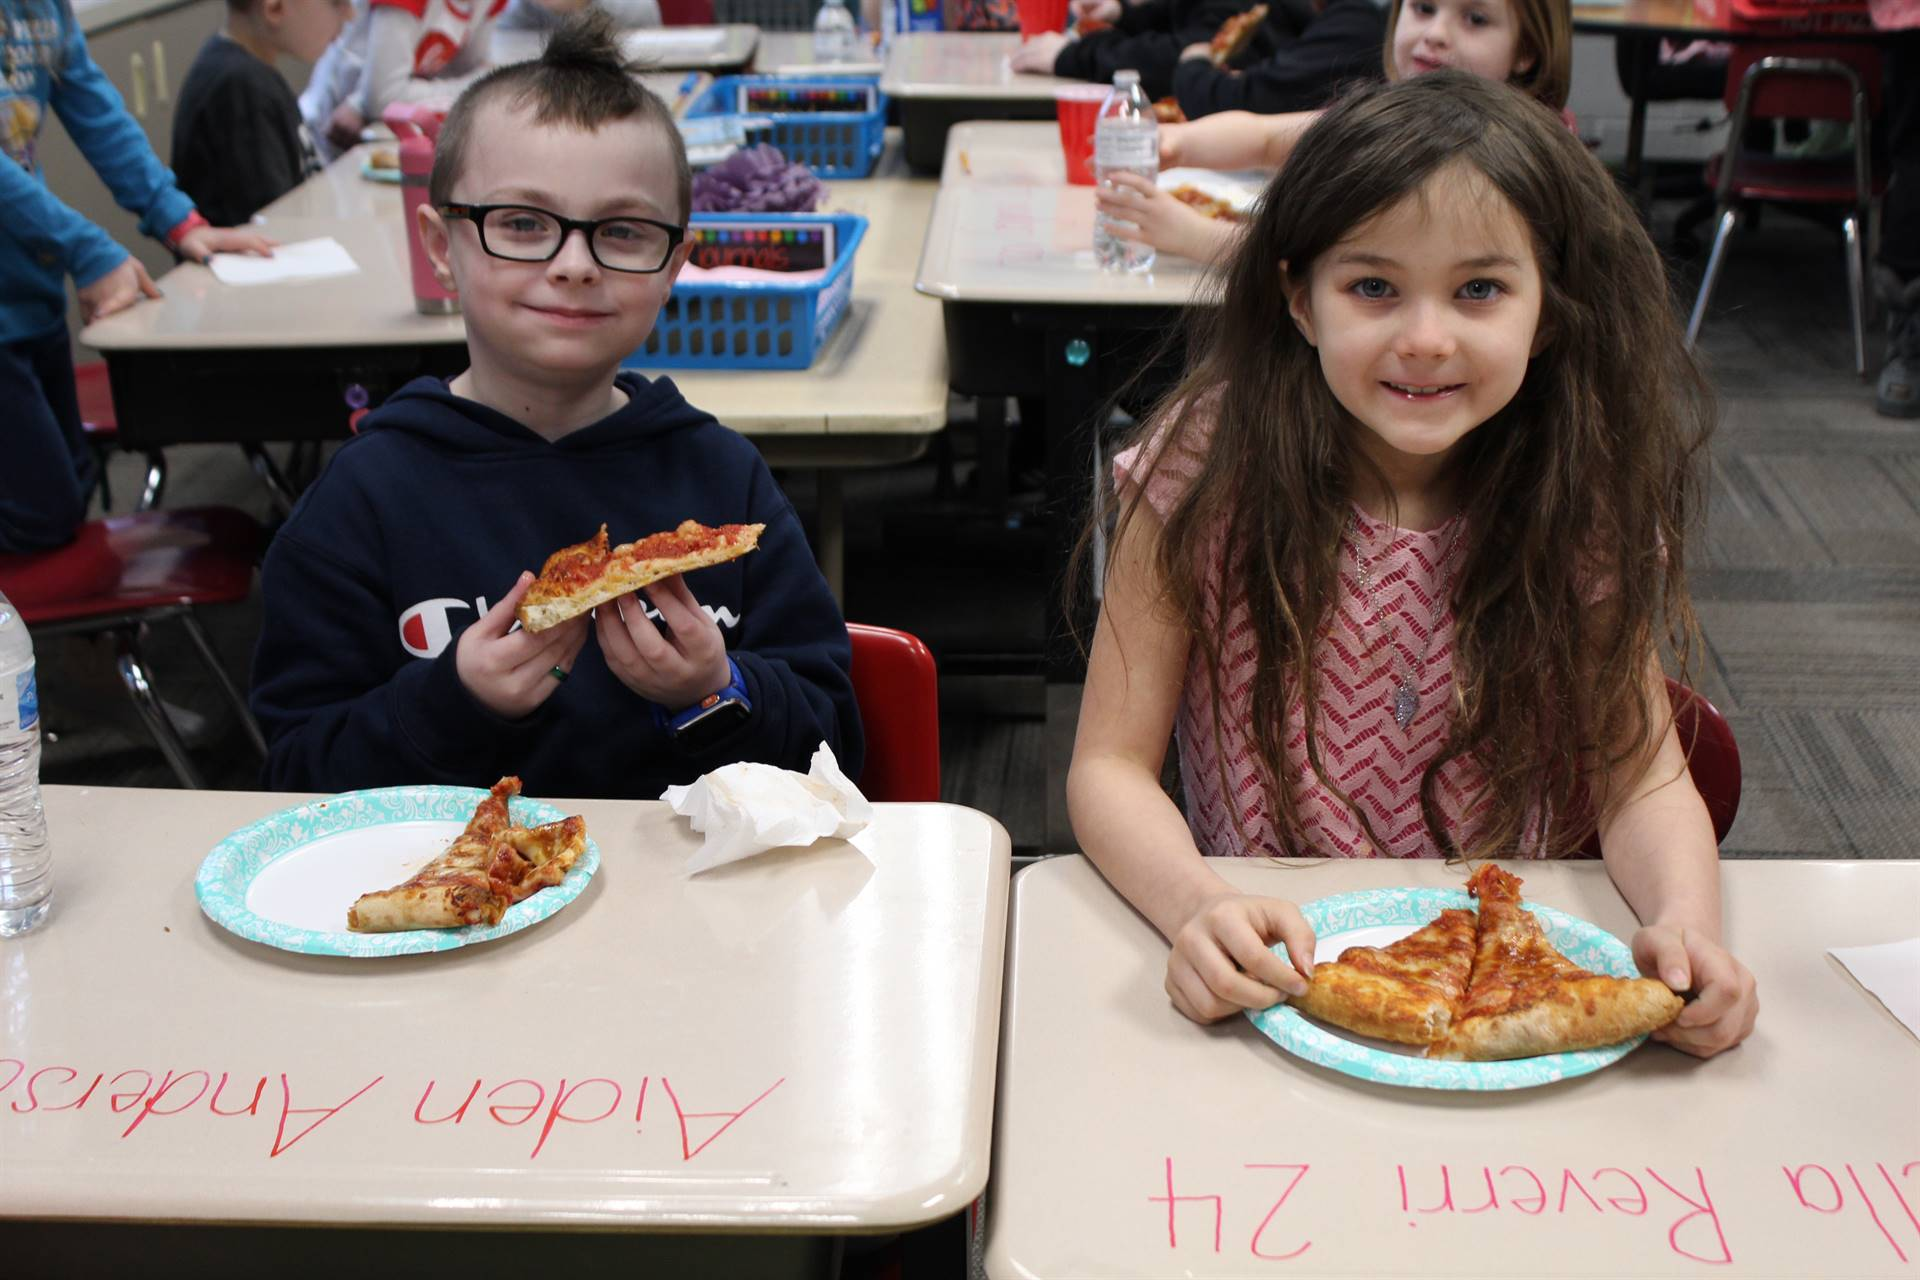 Two students eating pizza